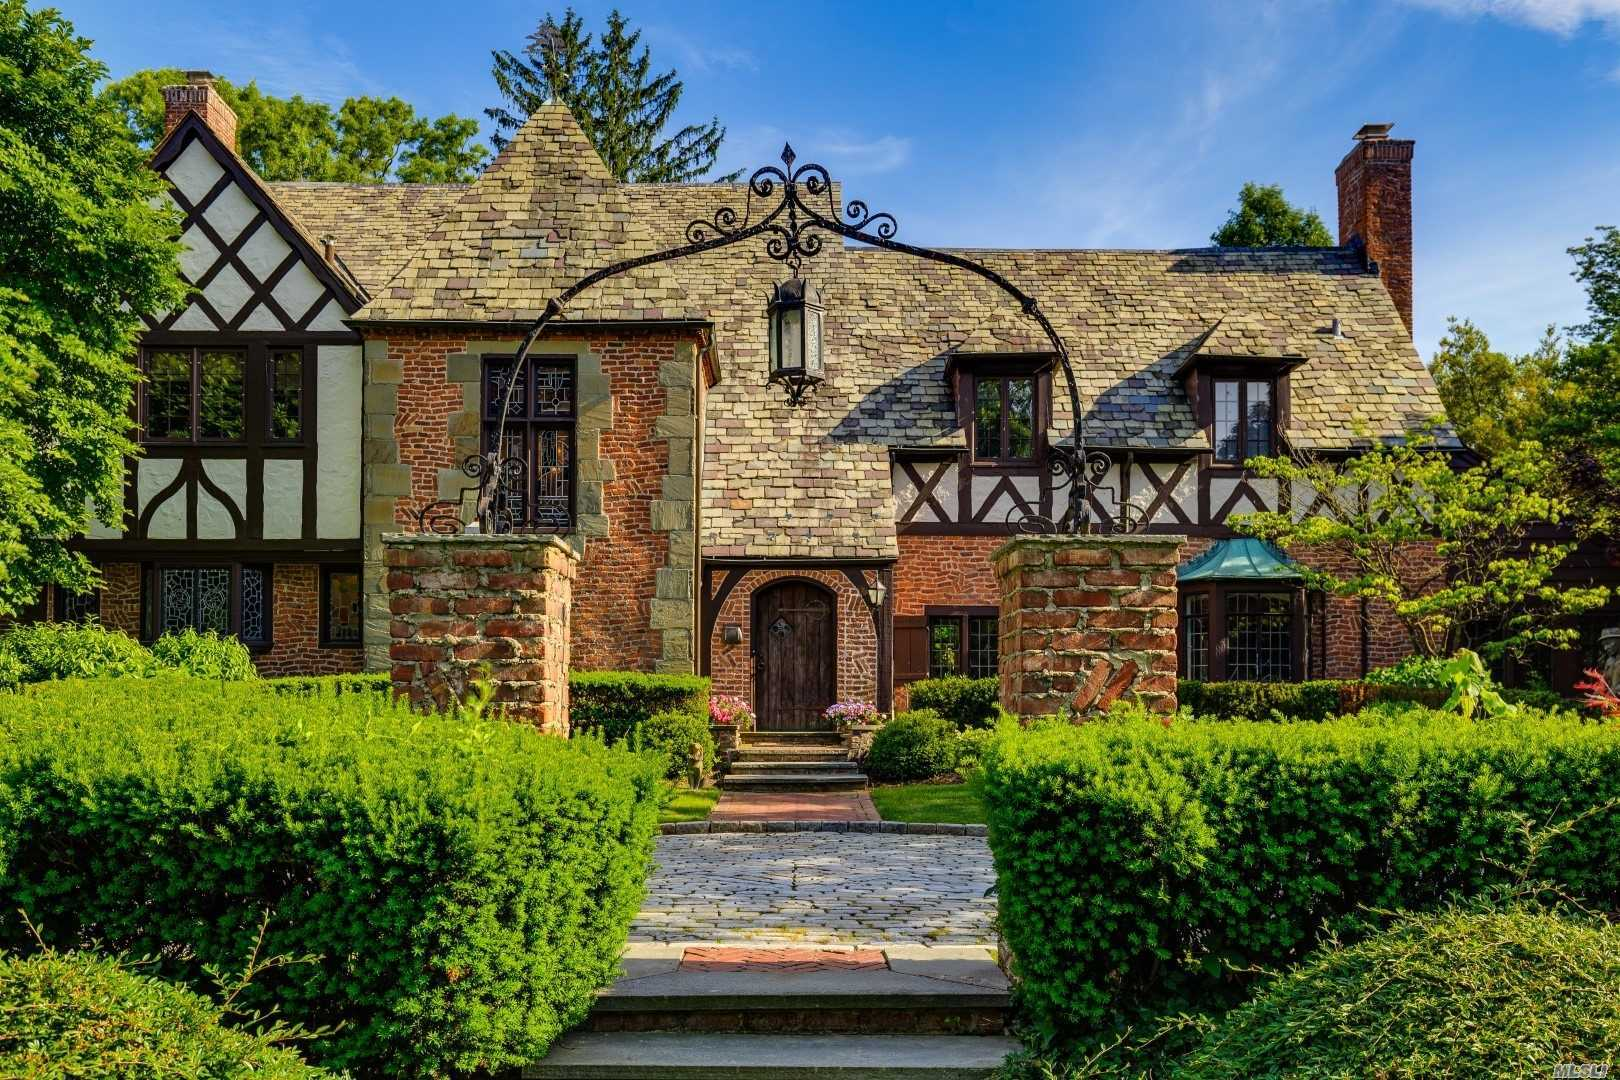 Rare Offering!! Giant English Tudor Manse In Prestigious Windsor Gate Cul De Sac W/ Private Park.  Majestic Features Include High Ceilings, Large Rooms, Staff Wing, Exposed Brick, Artisinal Stained Glass, Lush Grounds W/ Bricked Patios.Recent Mint Renovation! Fireplace, Separate Living + Family Room, Den, Glass Cathedral Breakfast Room, Renovated Chefs Kitchen, Luxe Master And Bath W/ Extensive Closets, Sunroom, Windowed Basement W/ Bar. Private Golf, Pool, Police, Day Camp, Tennis, A+ Schools